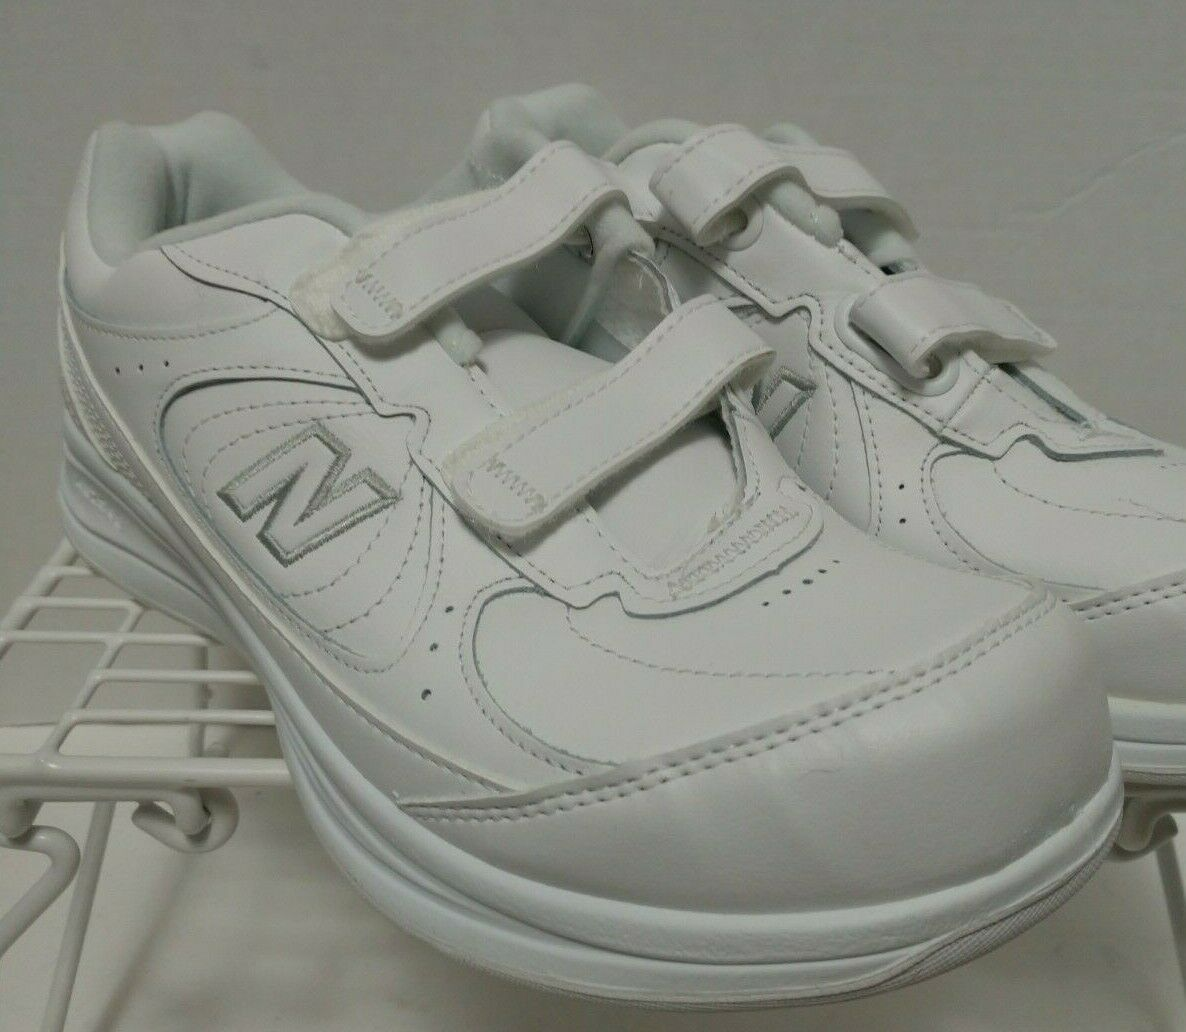 New Balance Women's 8.5 DSL-2 577 Walking Shoes 100% Authentic New With Tags